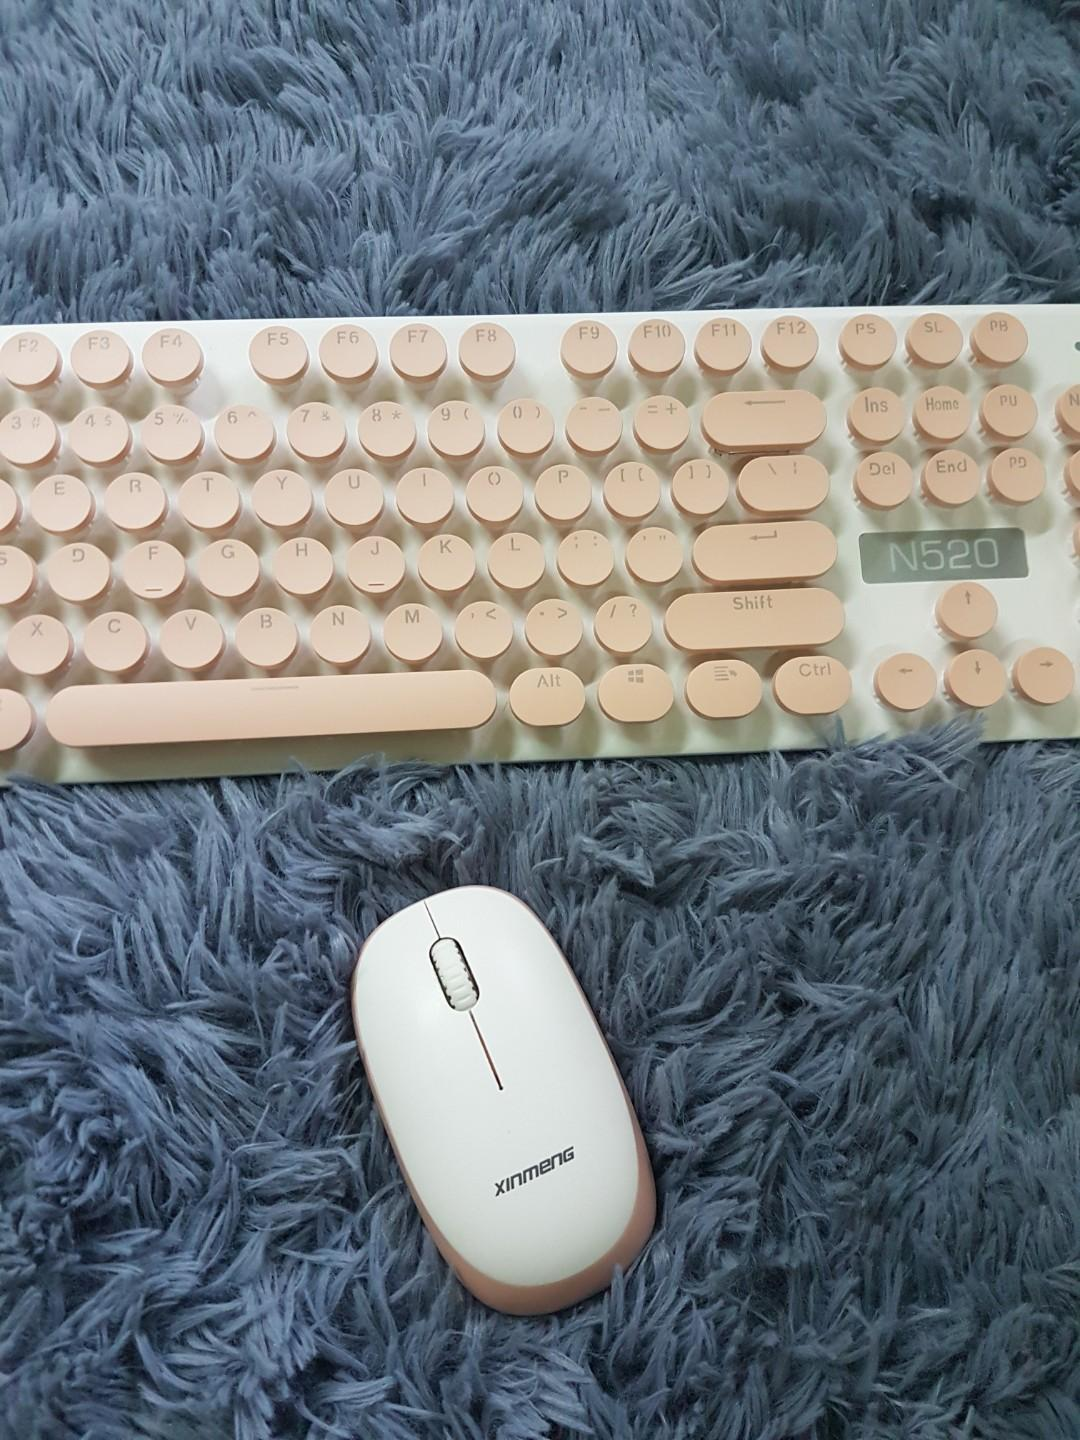 Wireless Typewriter Keyboard with Mouse